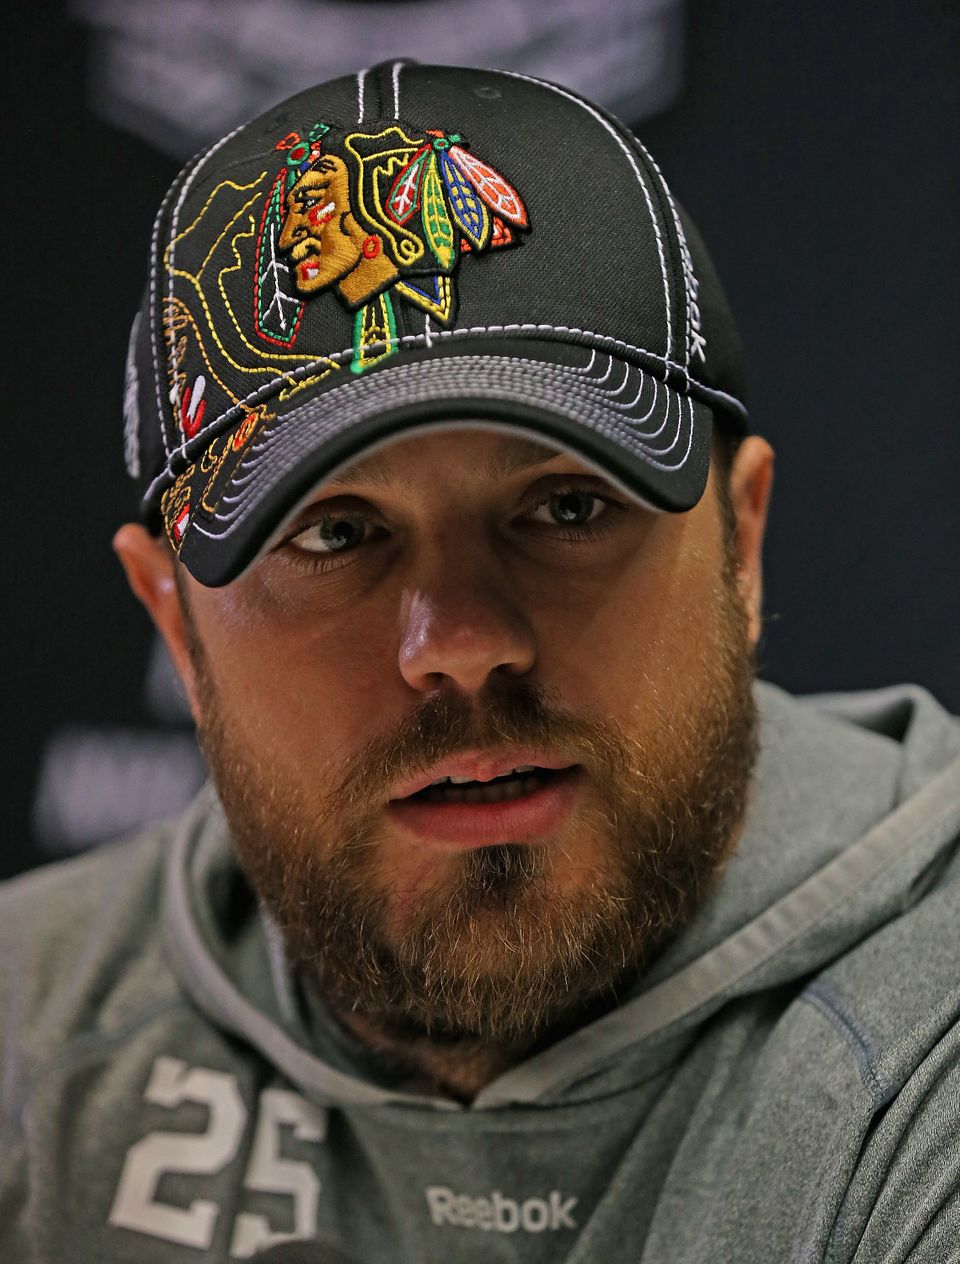 CHICAGO, IL - JUNE 11: Viktor Stalberg #25 of the Chicago Blackhawks answers questions during the 2013 NHL Stanley Cup media